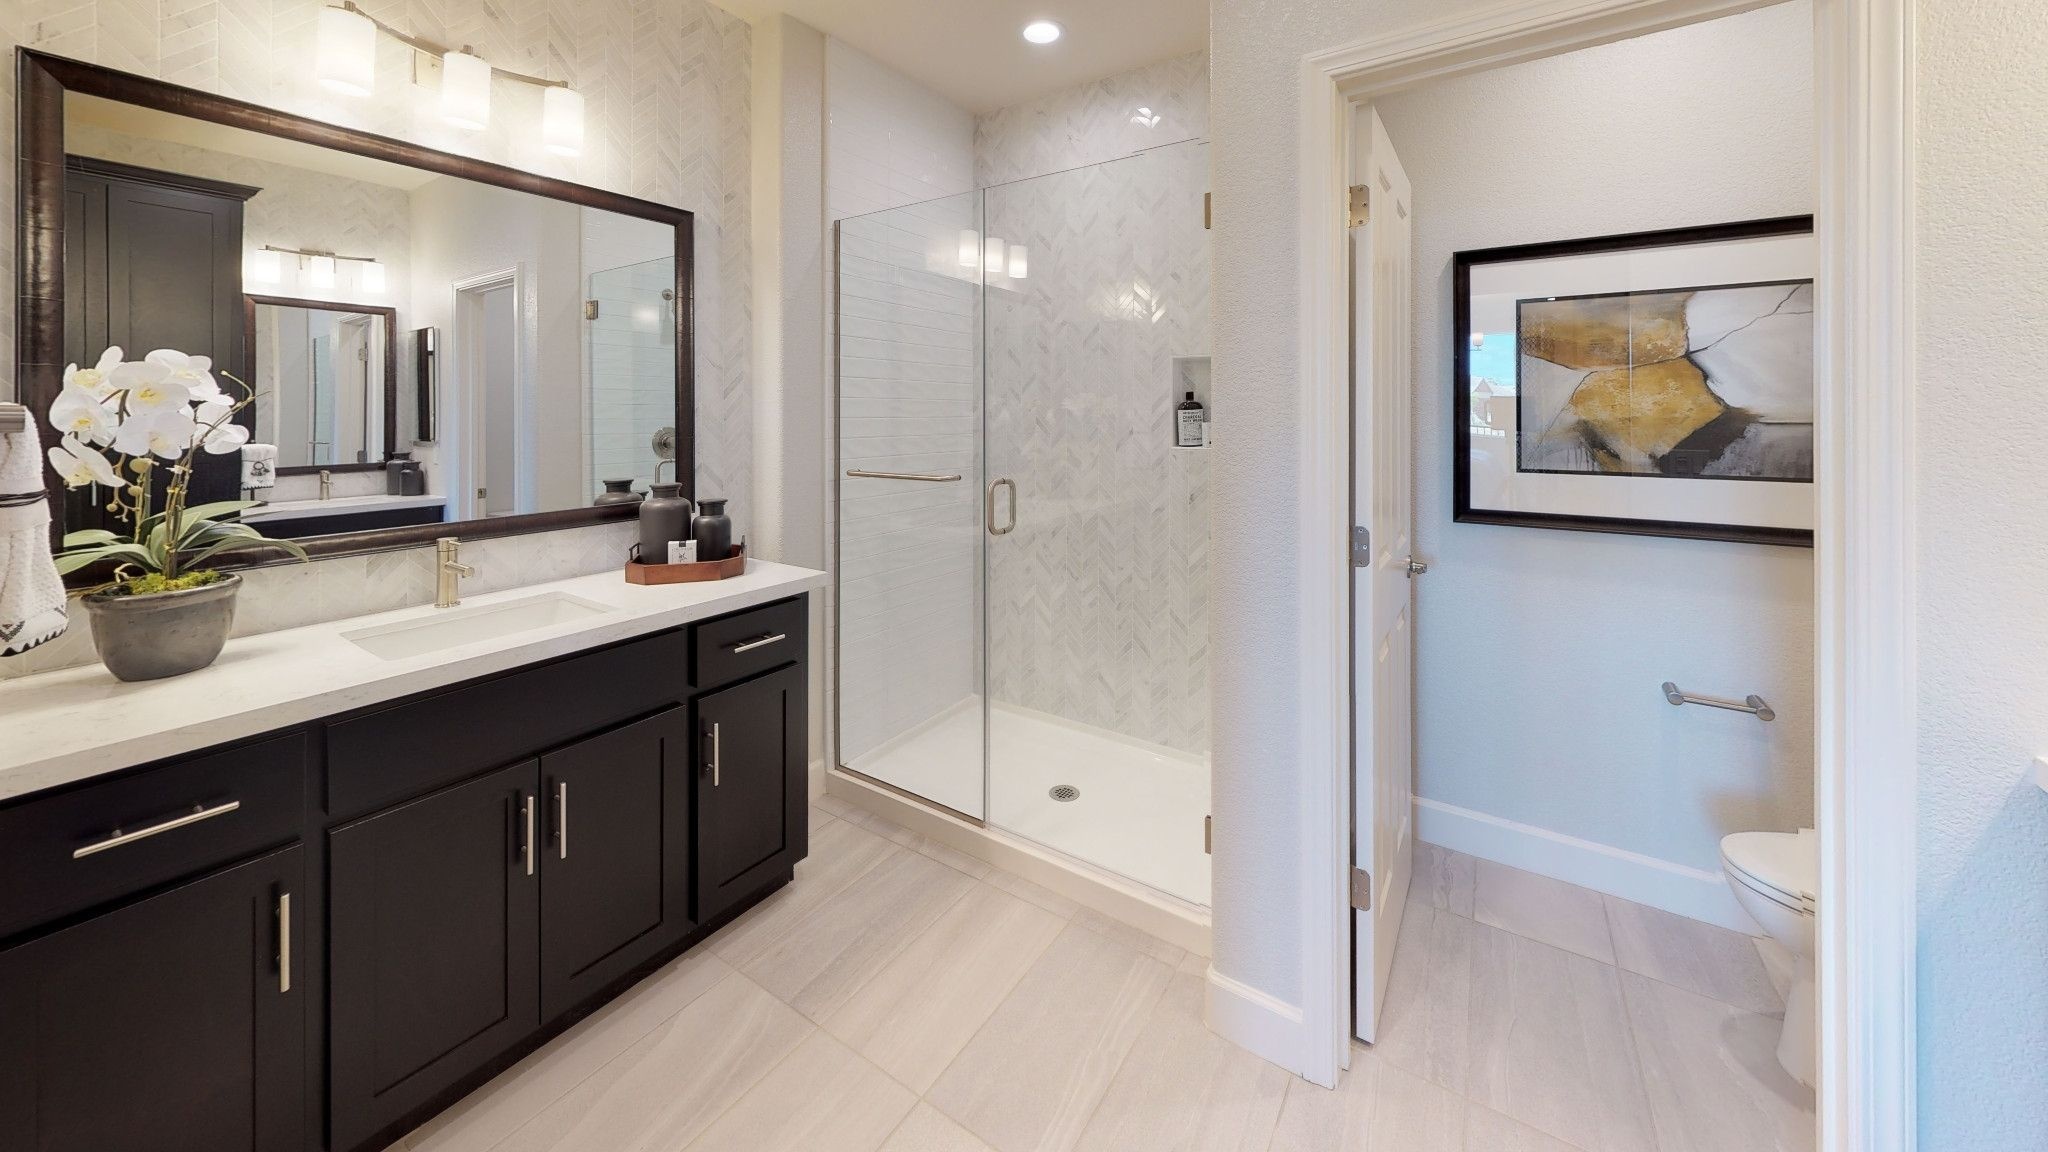 Bathroom featured in the Aria with Loft By Shea Homes - Trilogy in Oakland-Alameda, CA